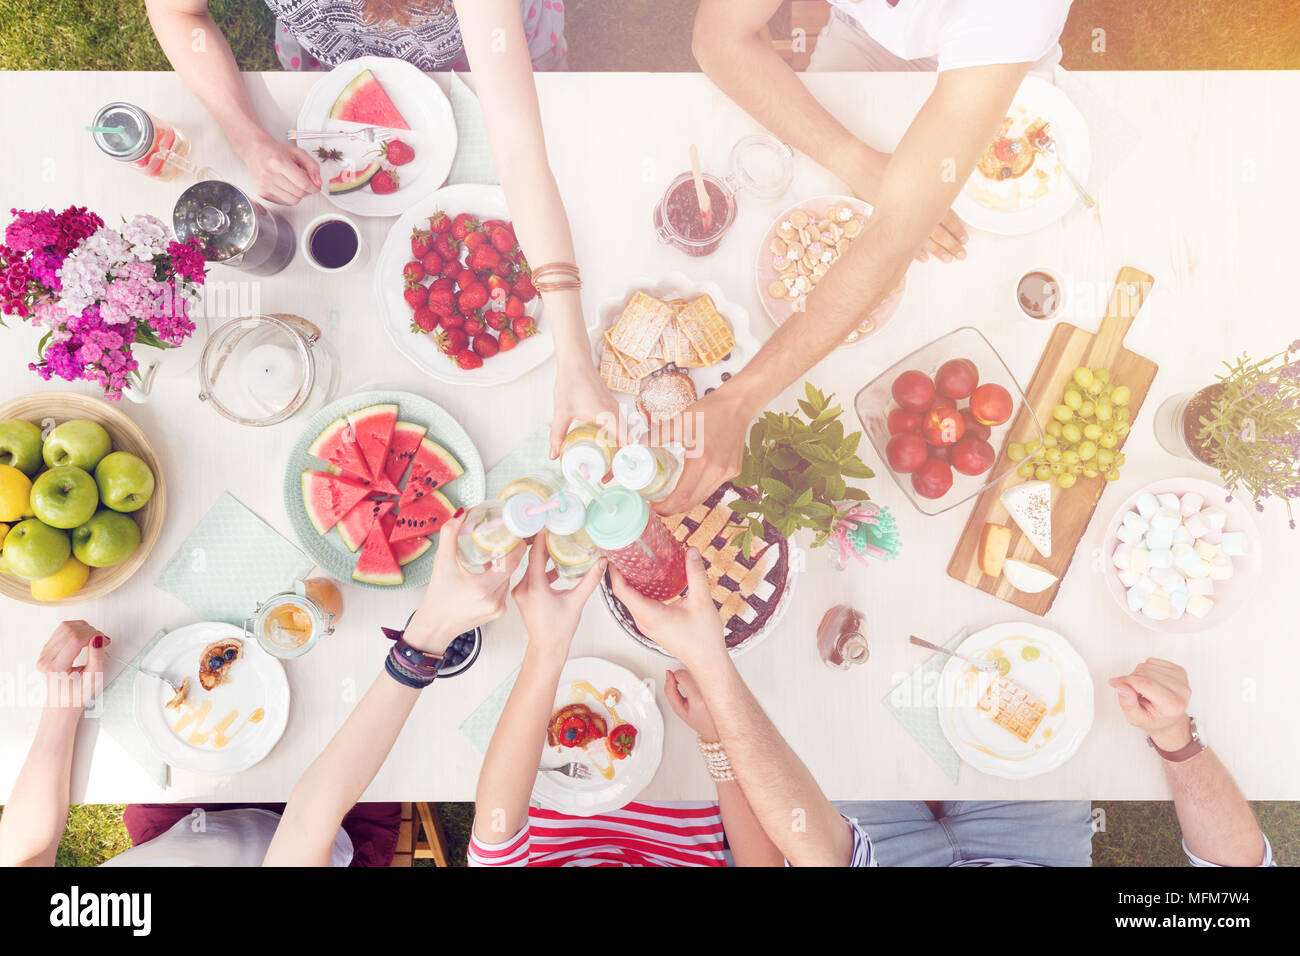 Mixed-race group eating healthy food outdoors and toasting - Stock Image